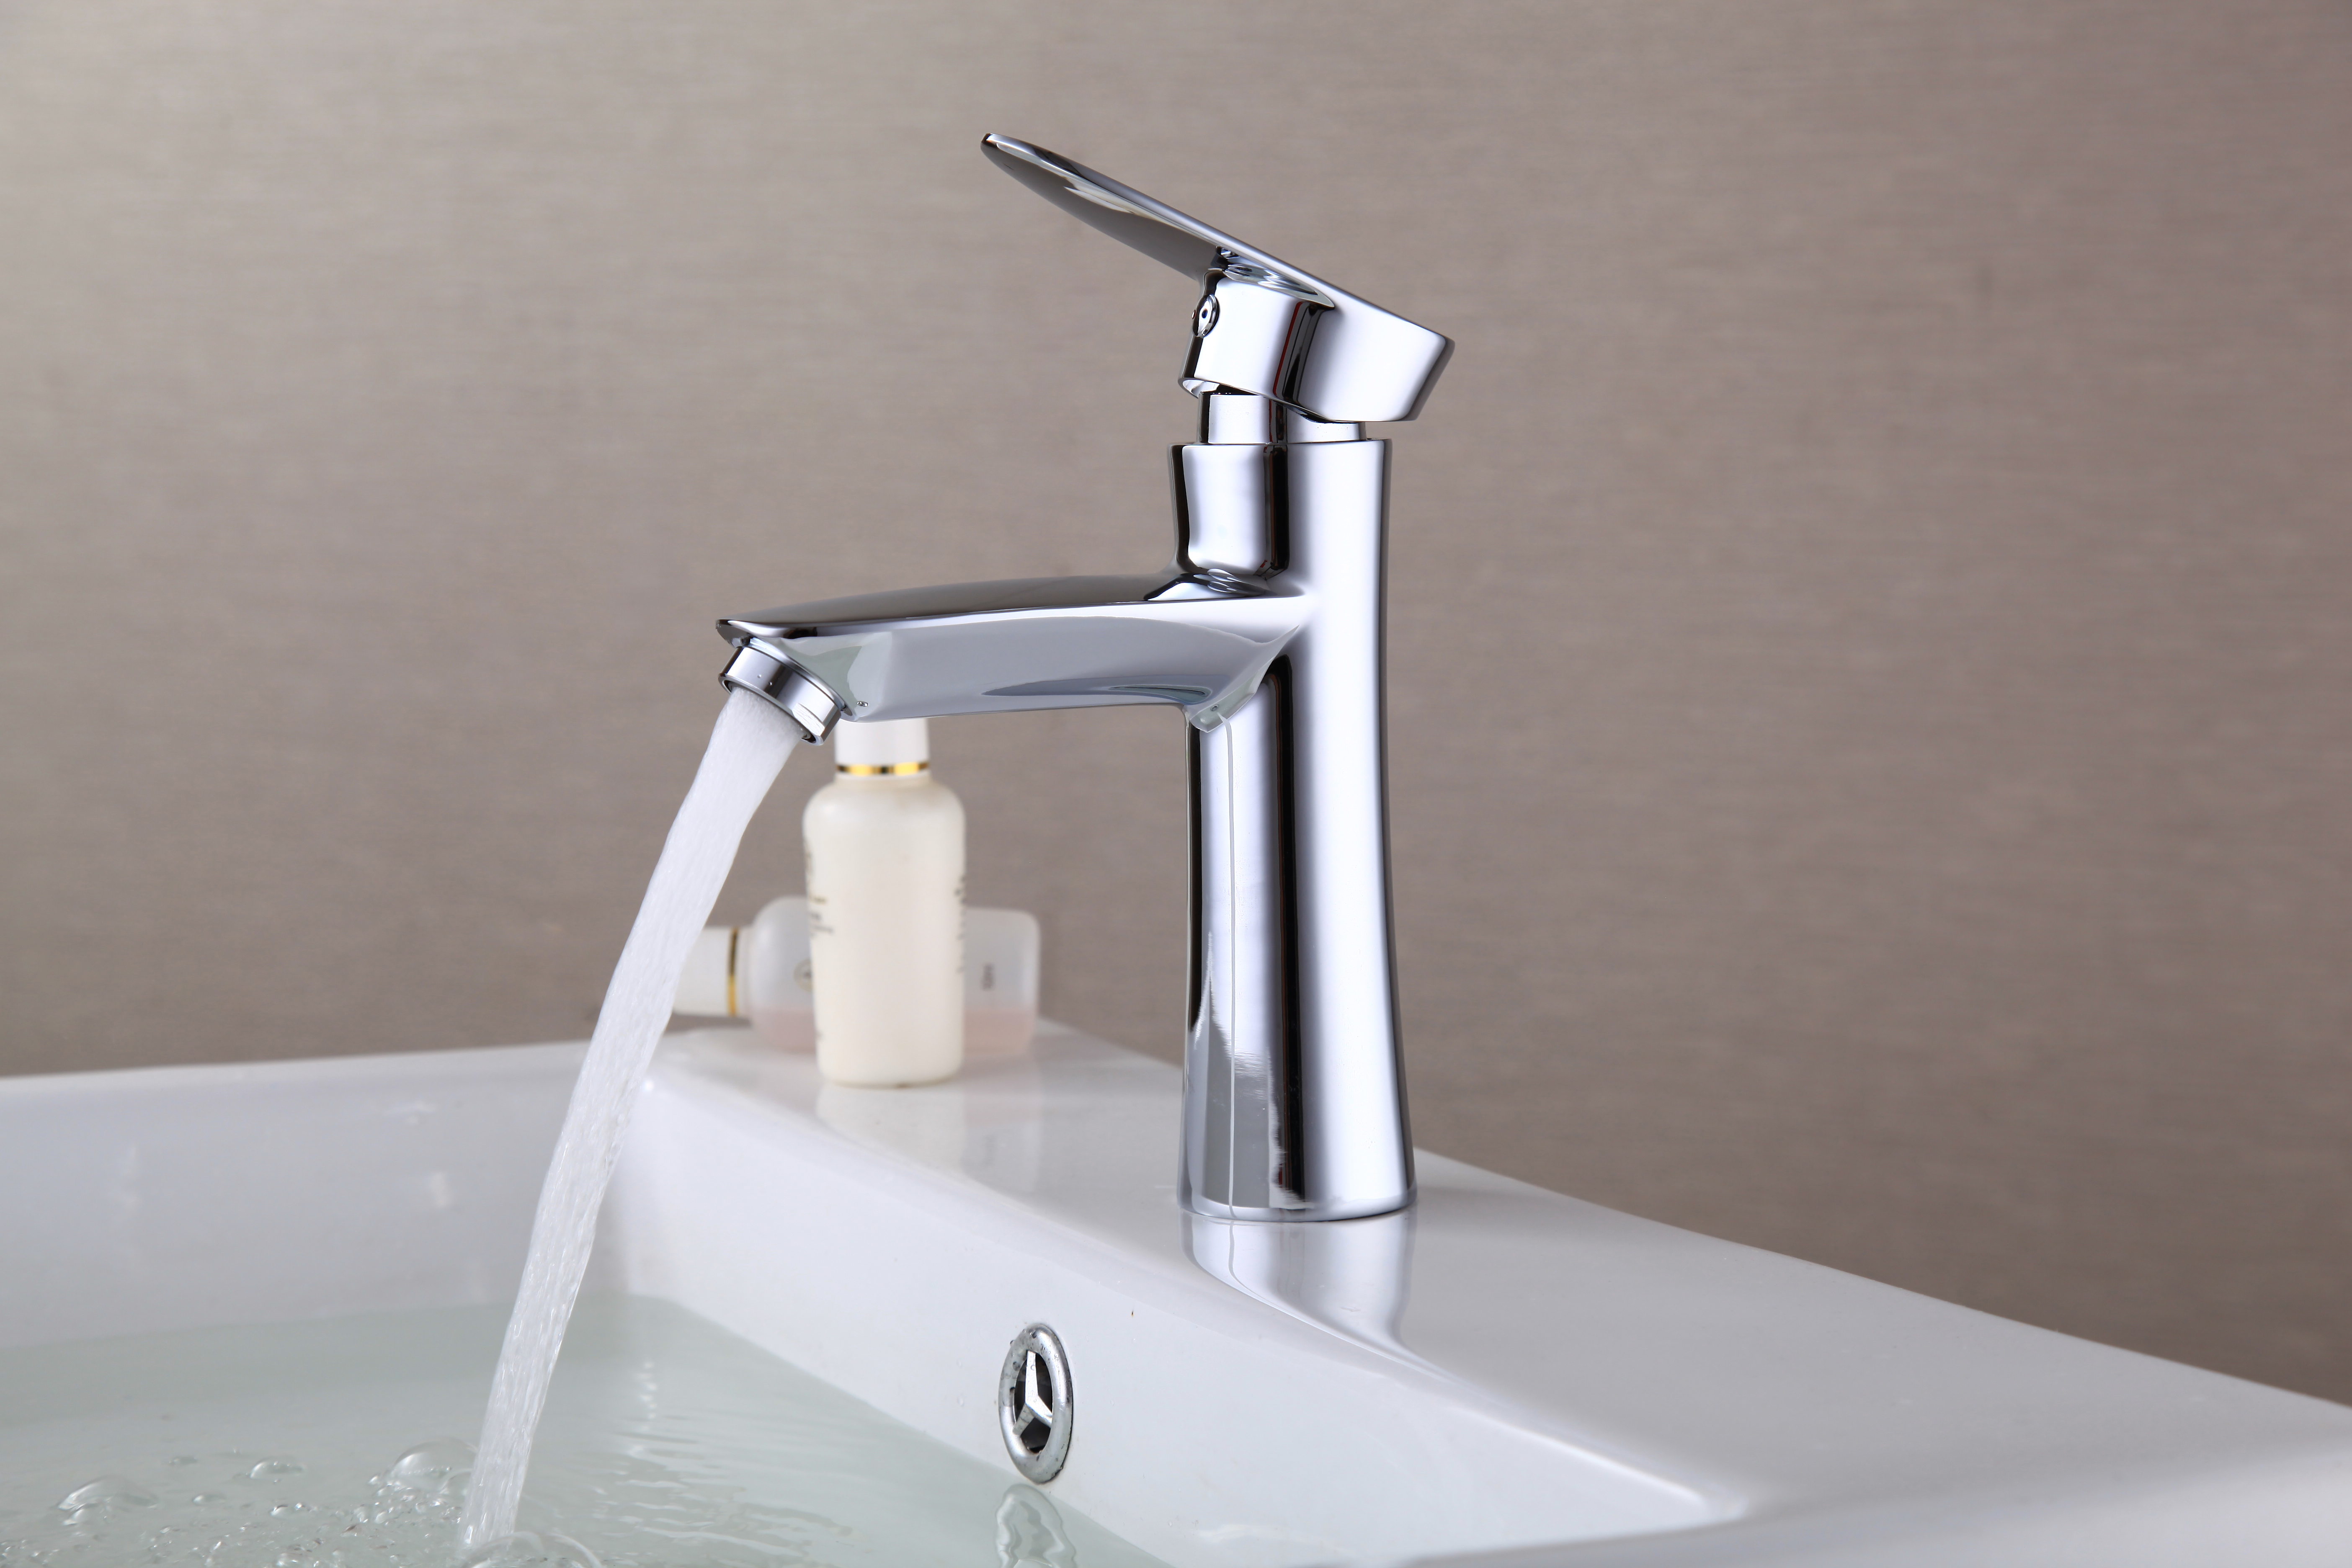 oil rubbed bronze modern bathroom faucet widespread sink mixer tap single handle. Black Bedroom Furniture Sets. Home Design Ideas